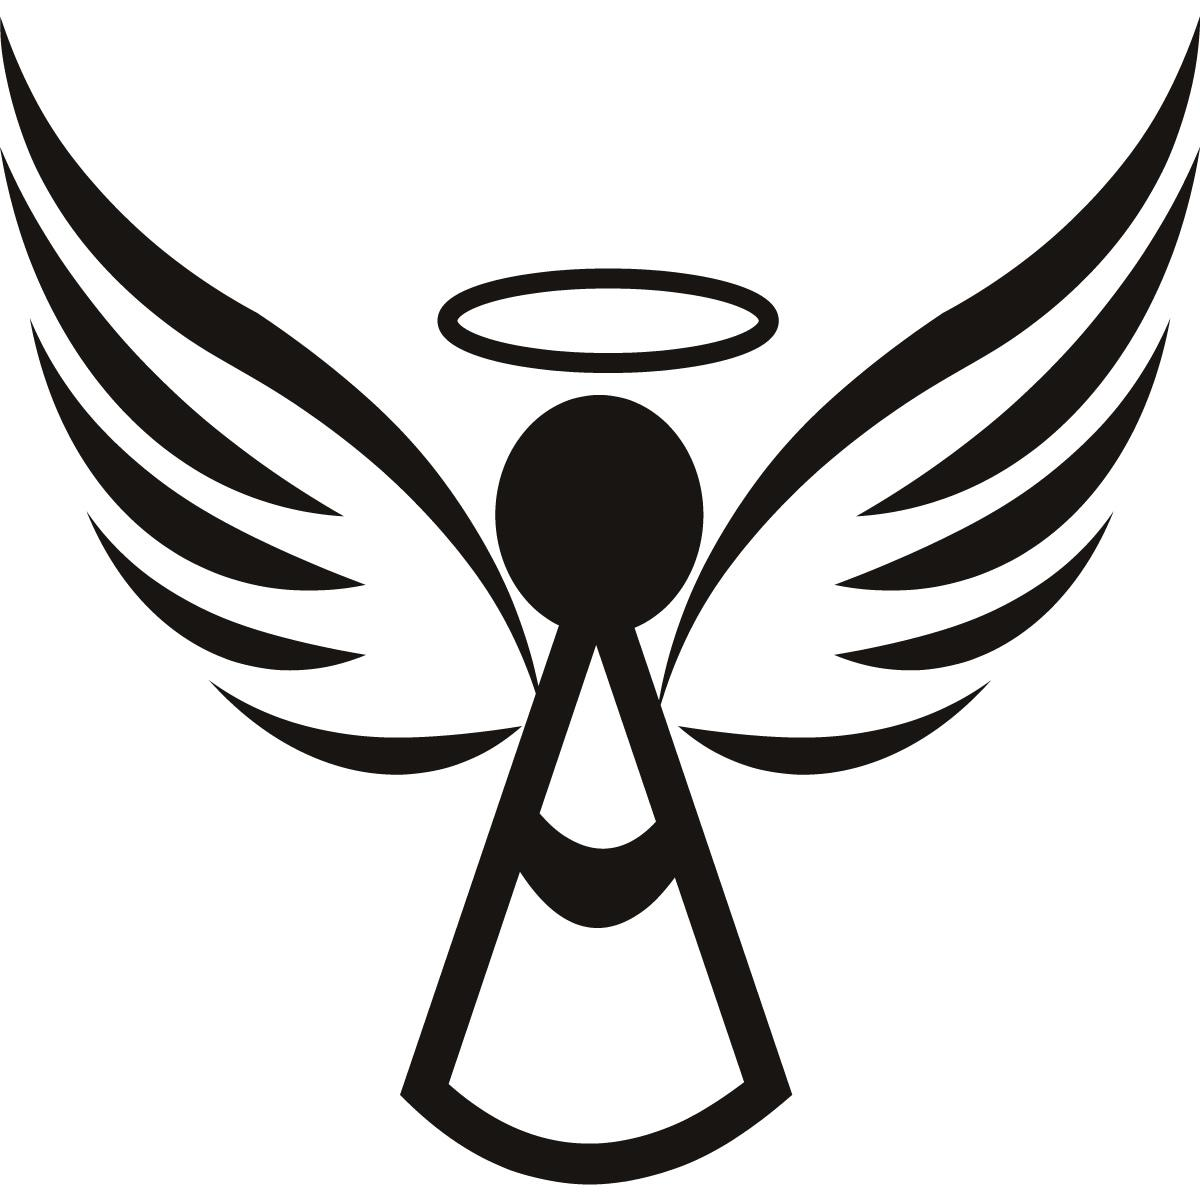 Best HD With Halo Xmas Wall Art Heart Angel Wings Clipart Black.